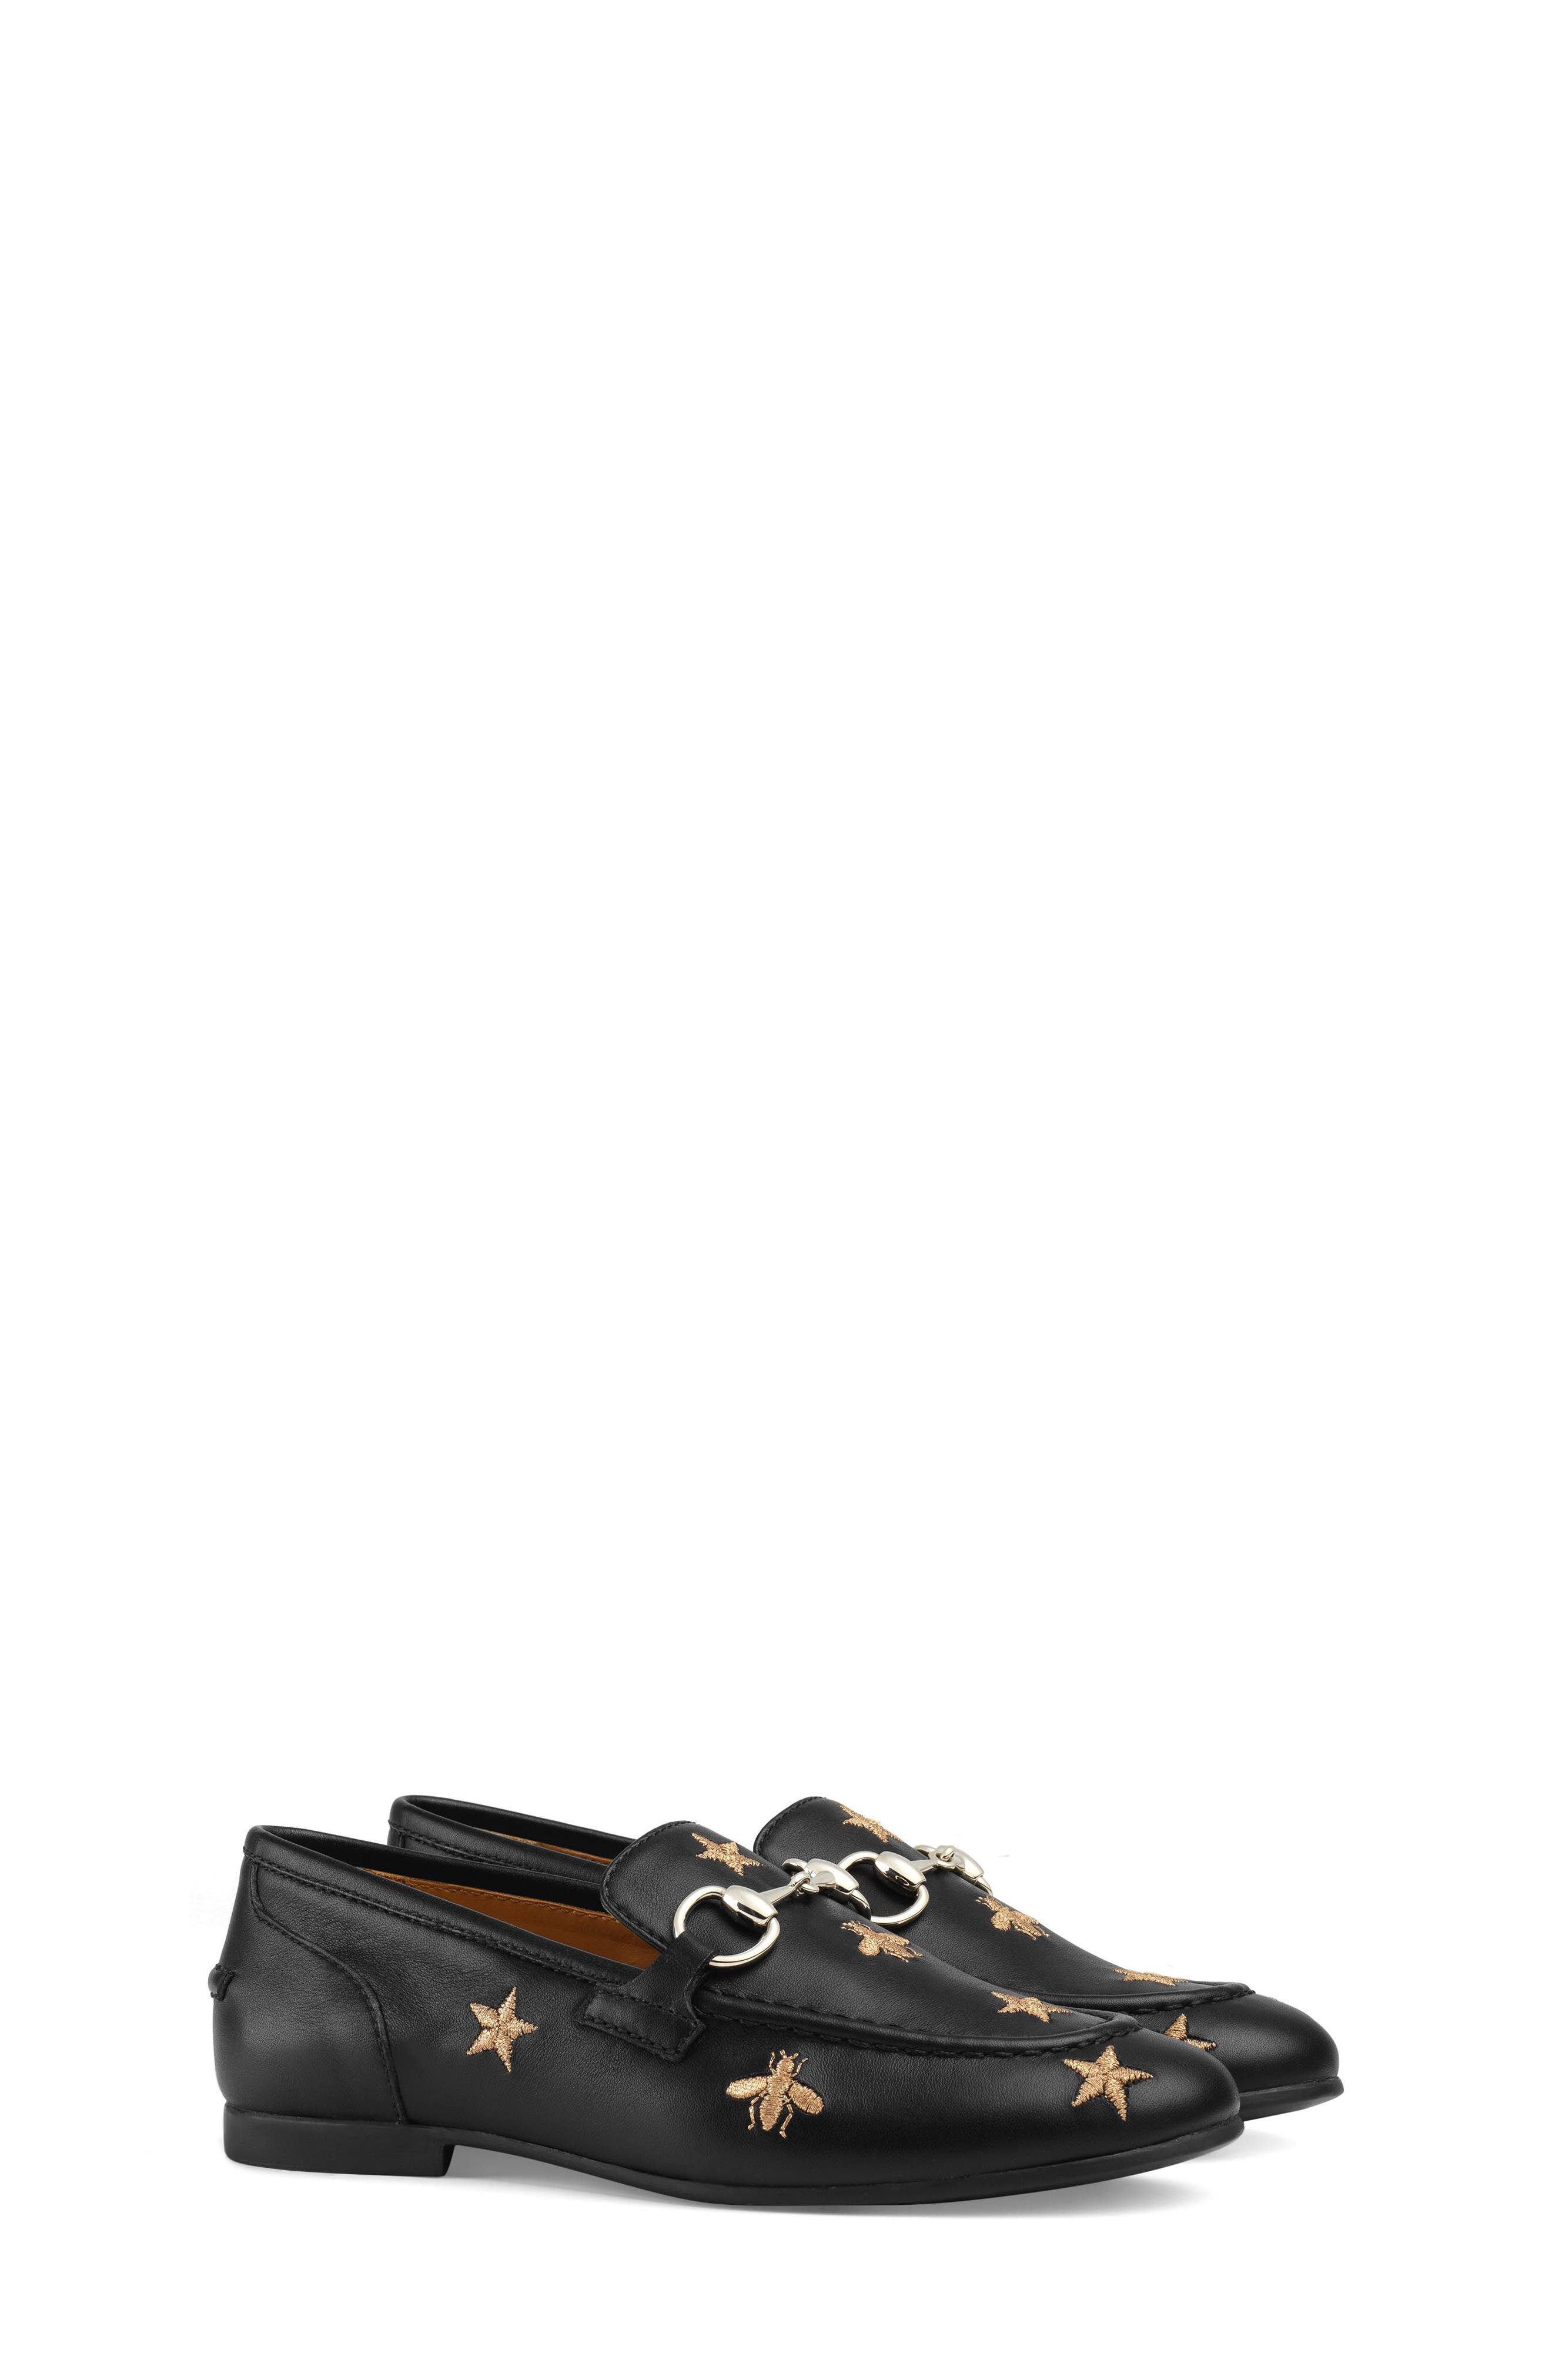 Jordaan Bit Loafer,                             Main thumbnail 1, color,                             BLACK